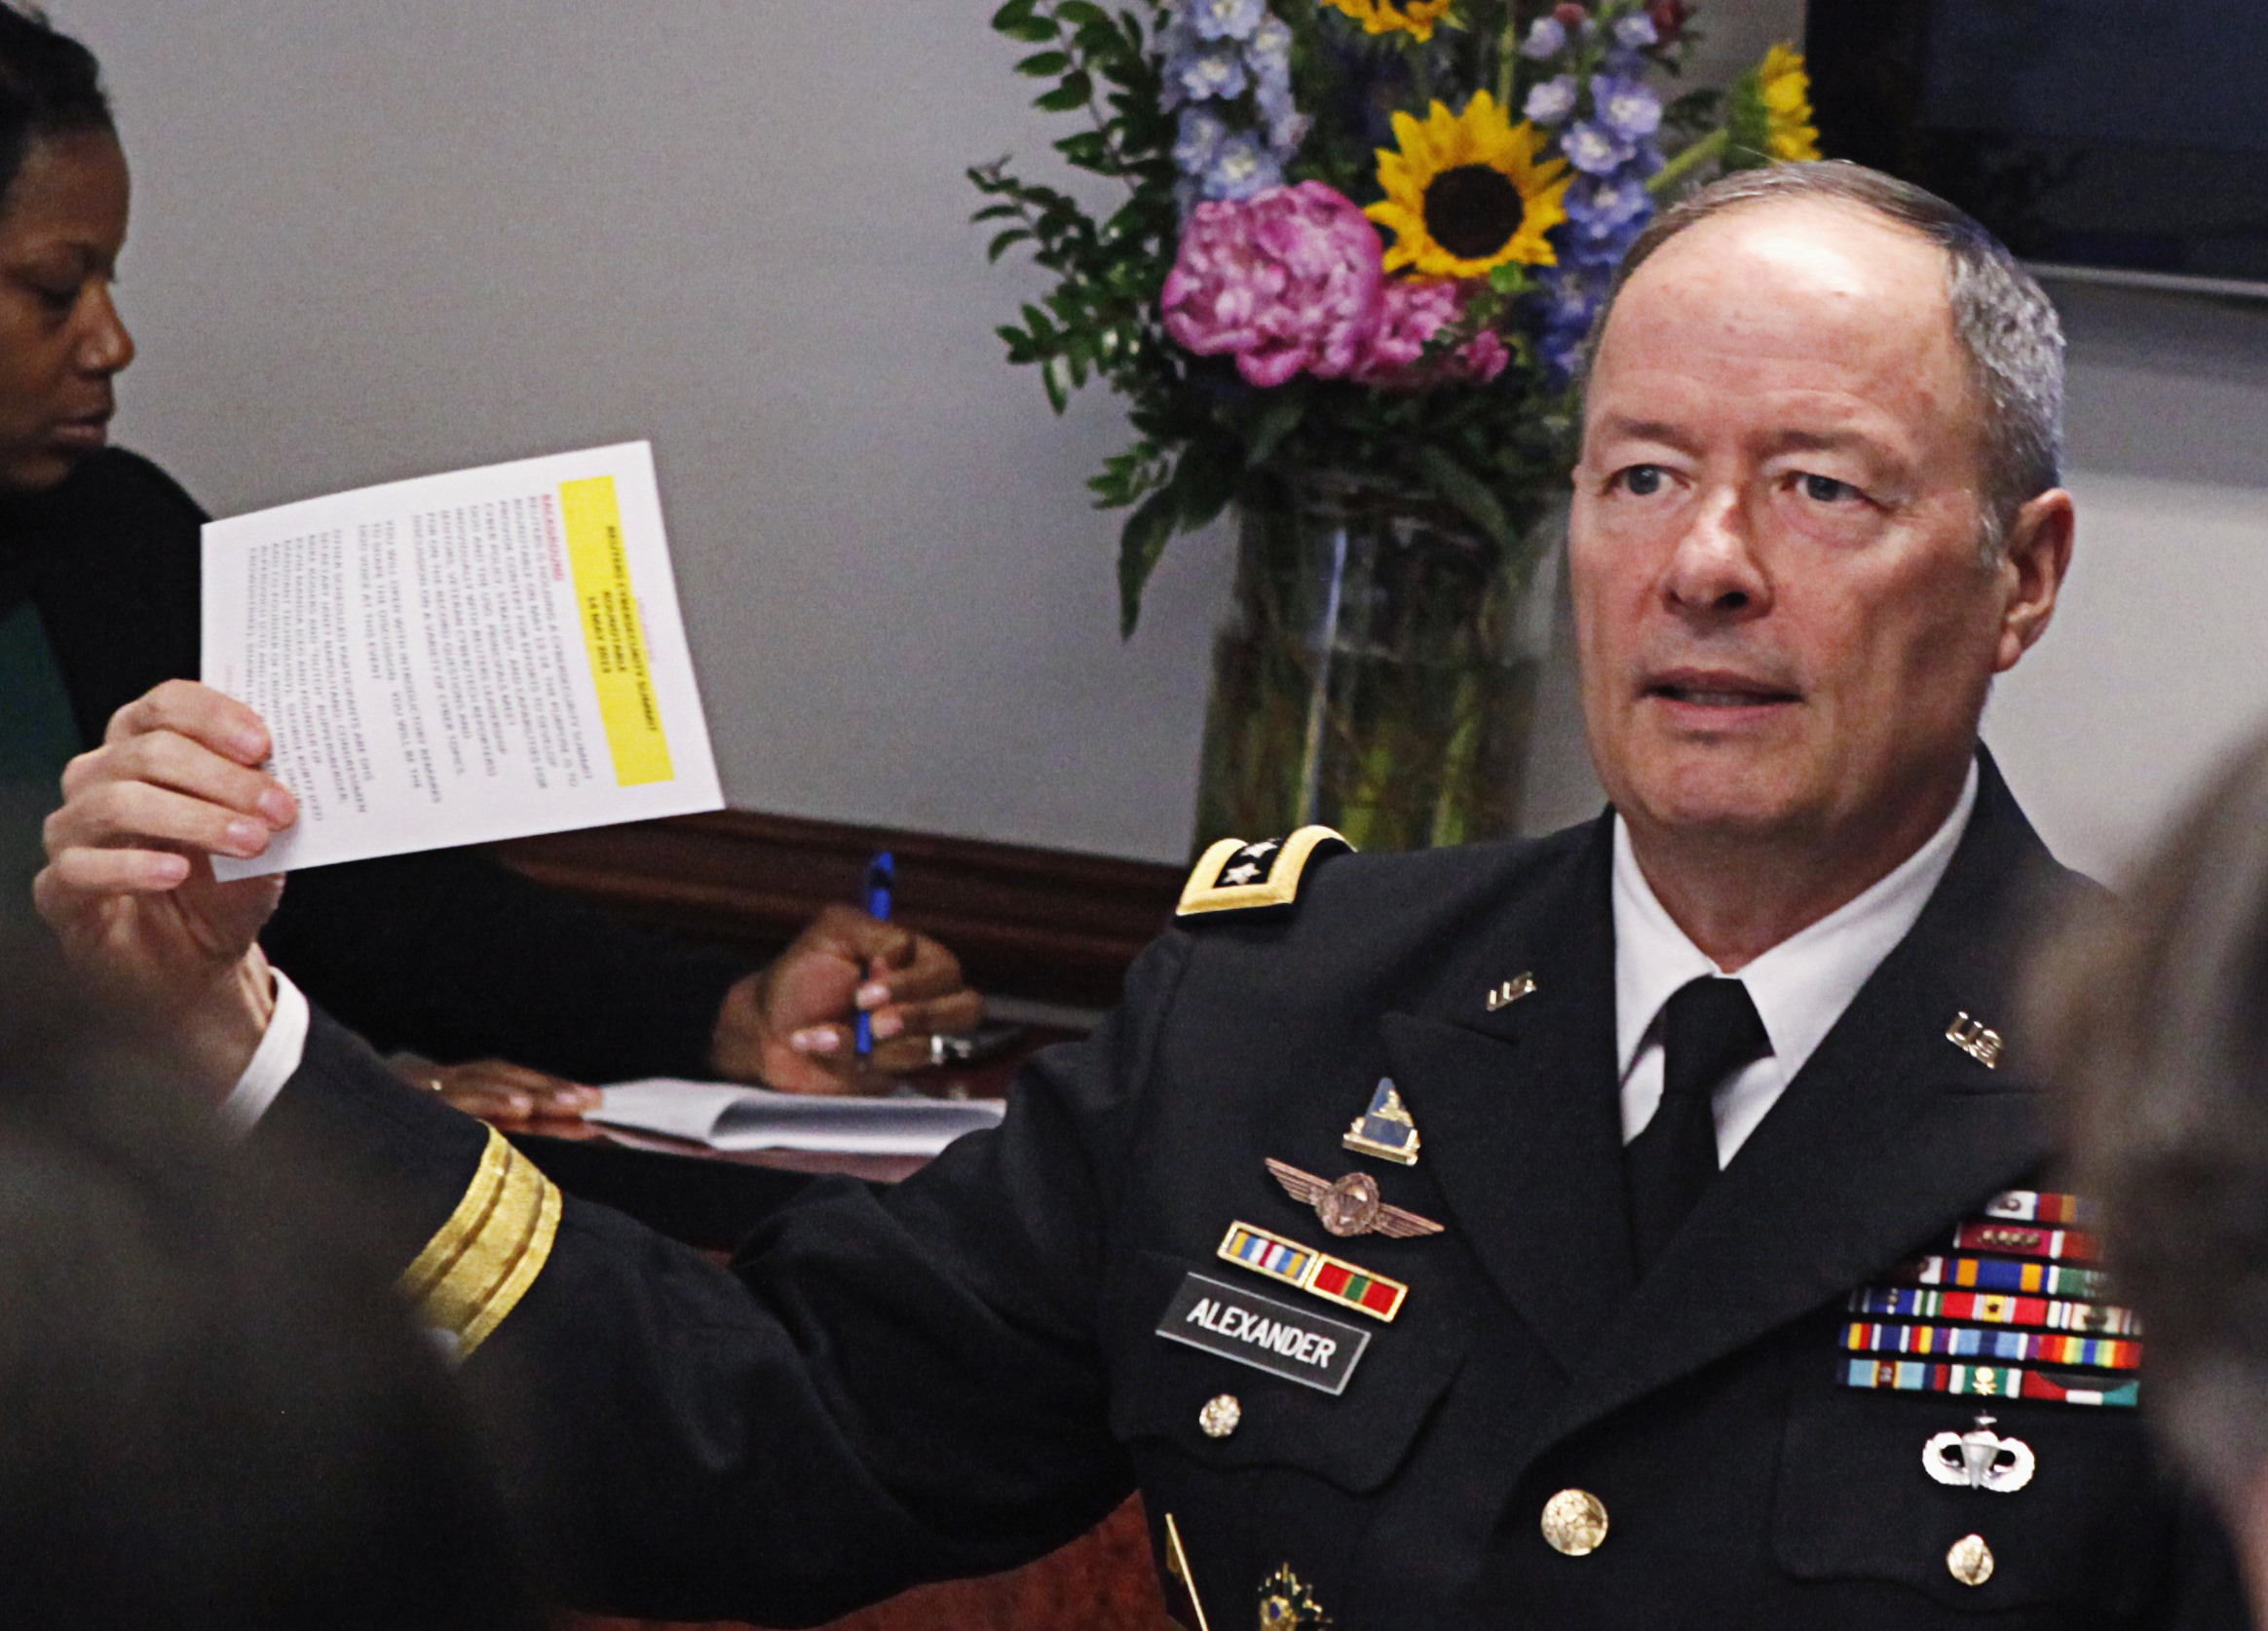 NSA Director Keith Alexander and Sacrificing Right to Privacy